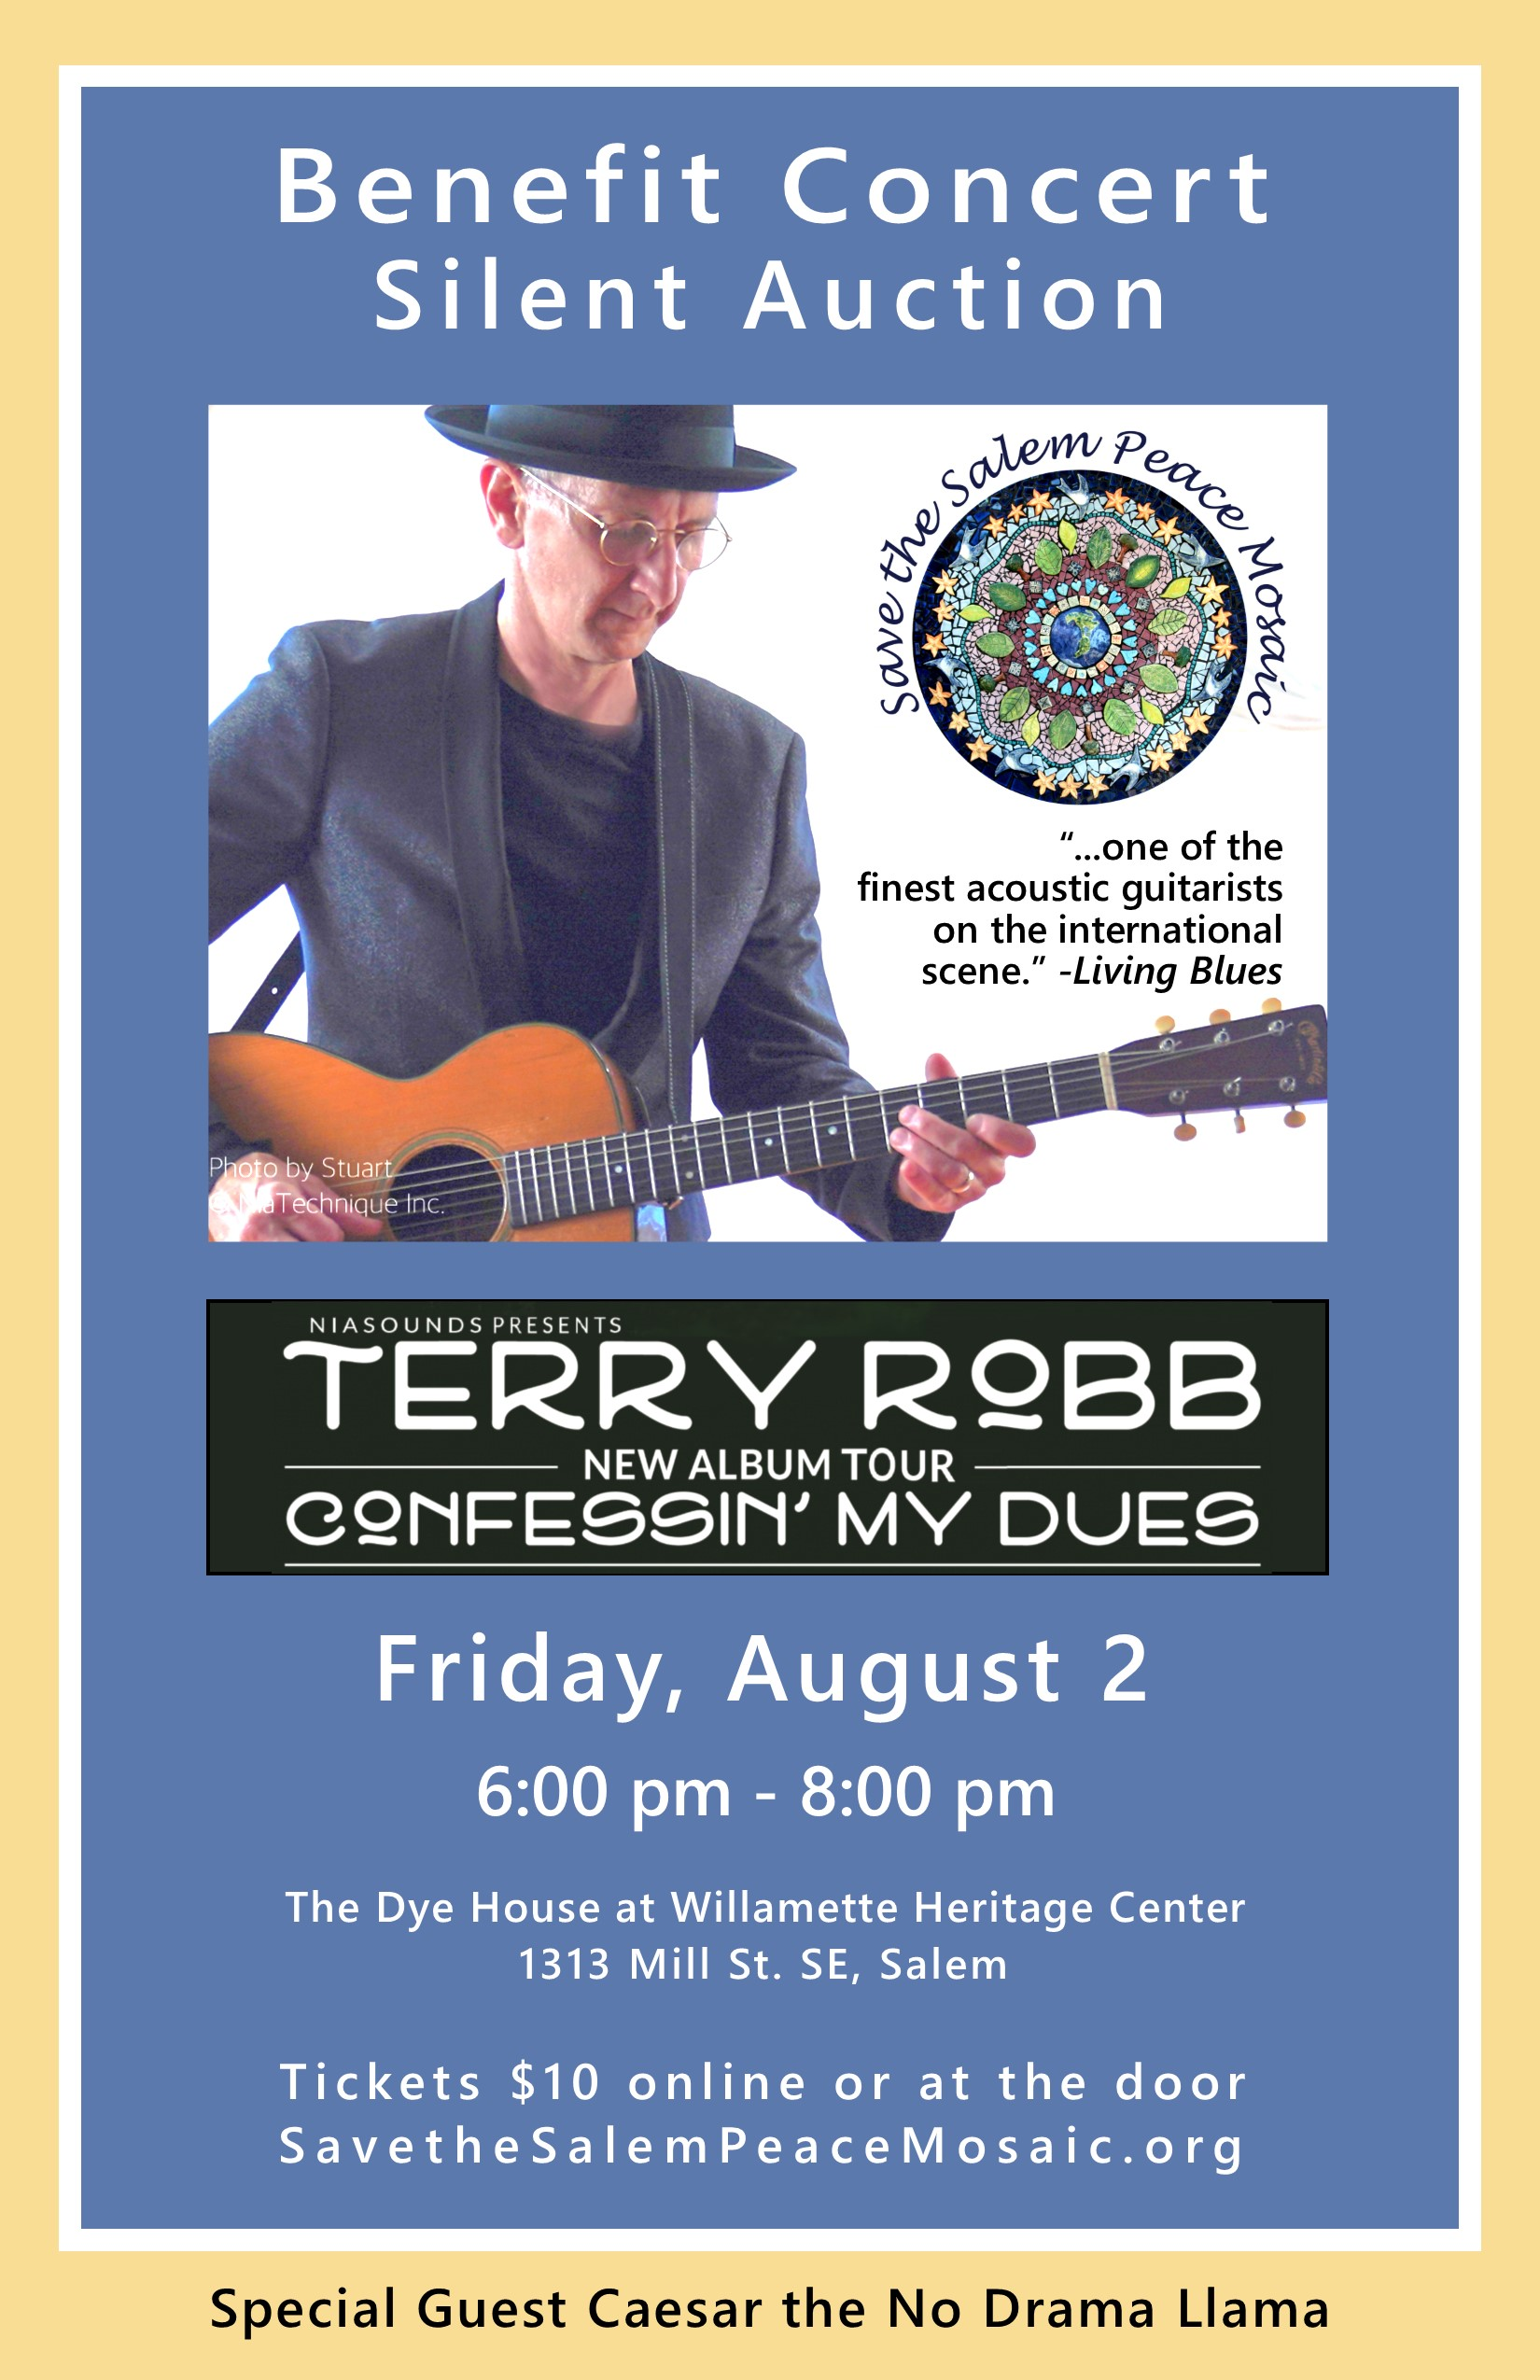 Benefit Concert Silent Auction with Terry Robb